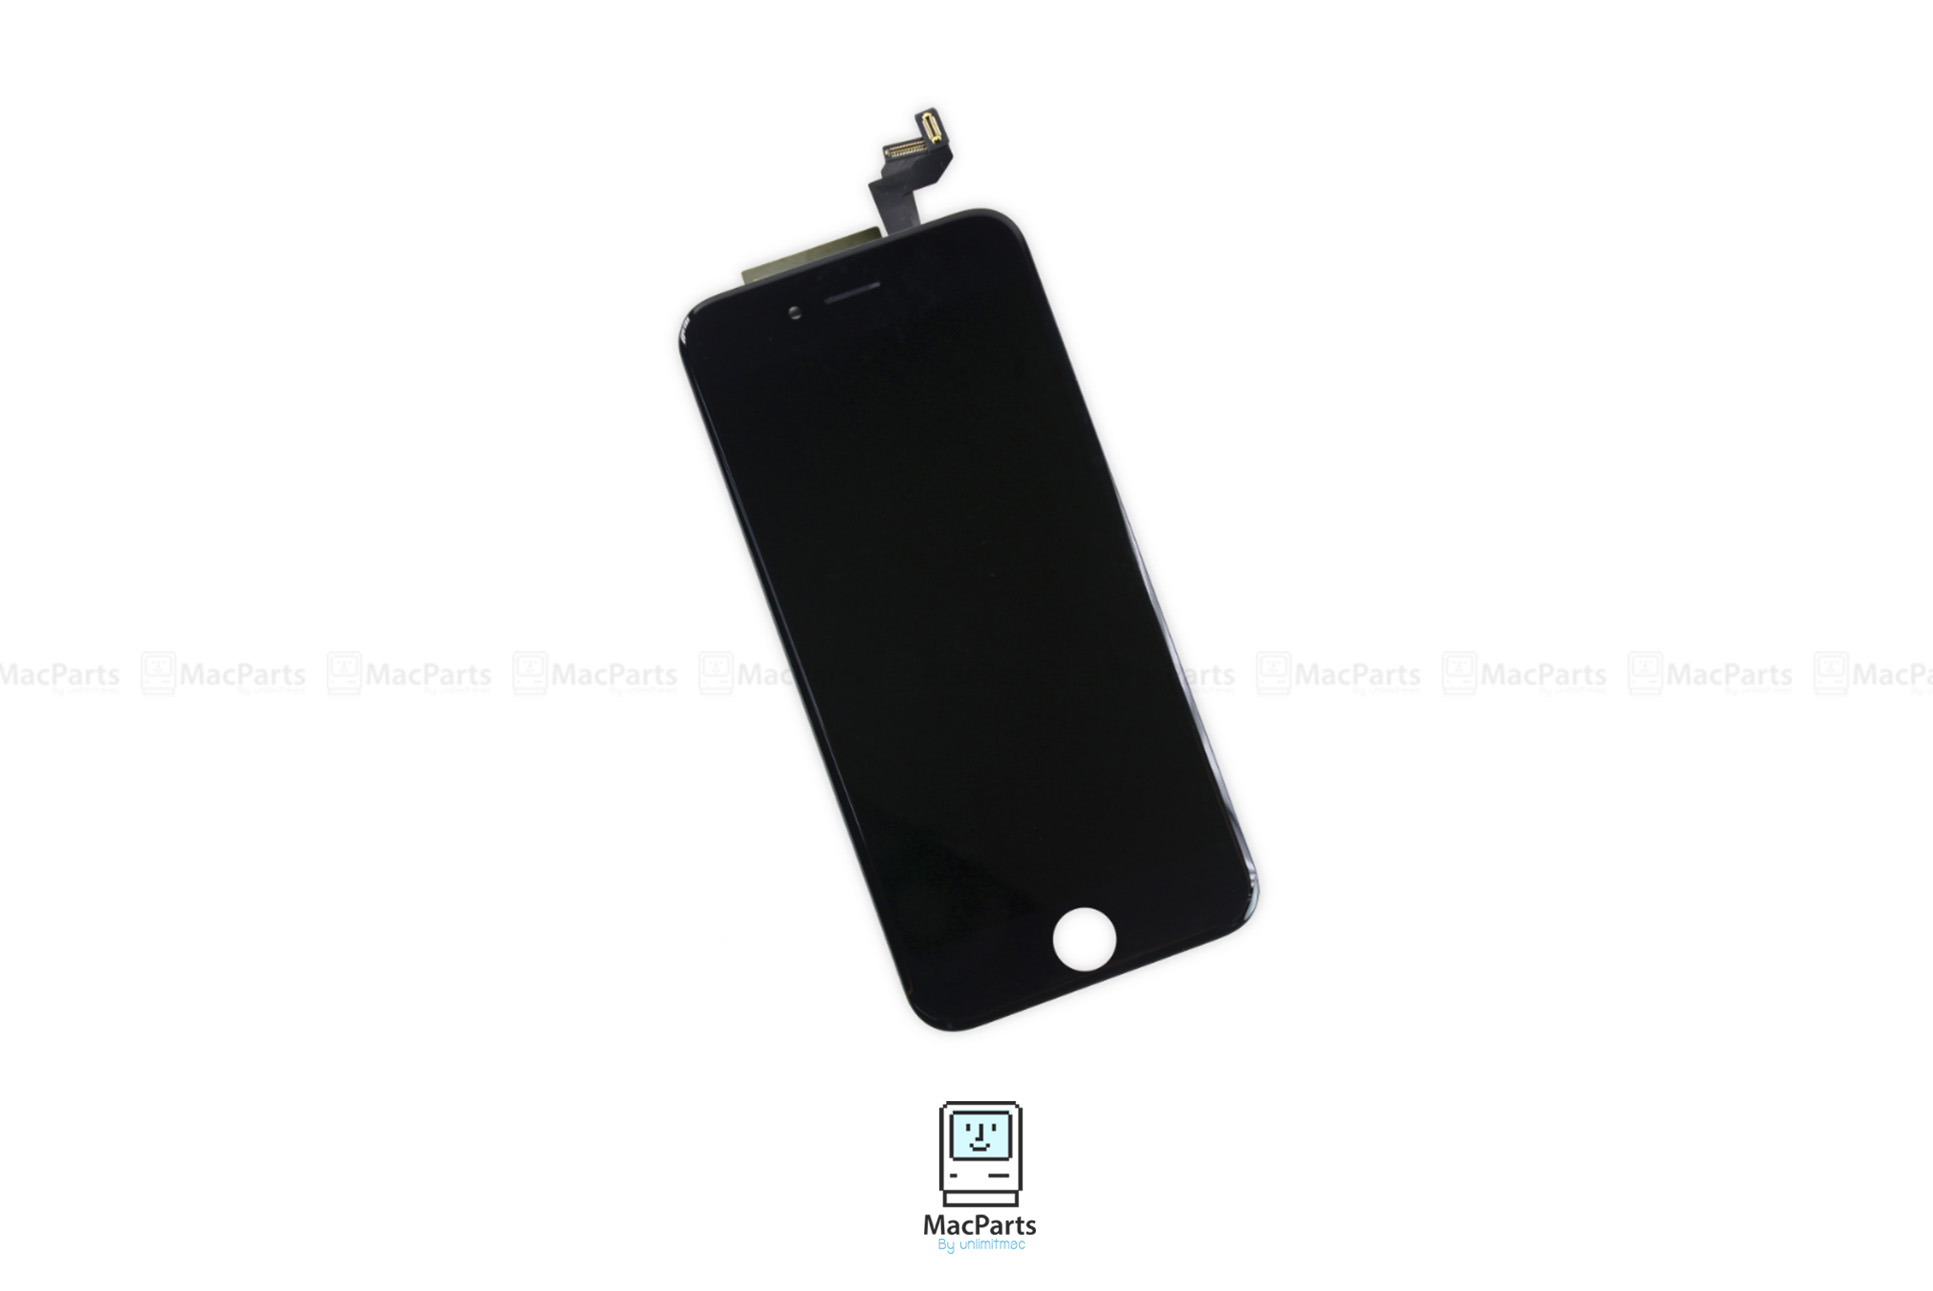 iPhone 6S Display Assembly (LCD, Front Panel/Digitizer Only) Black